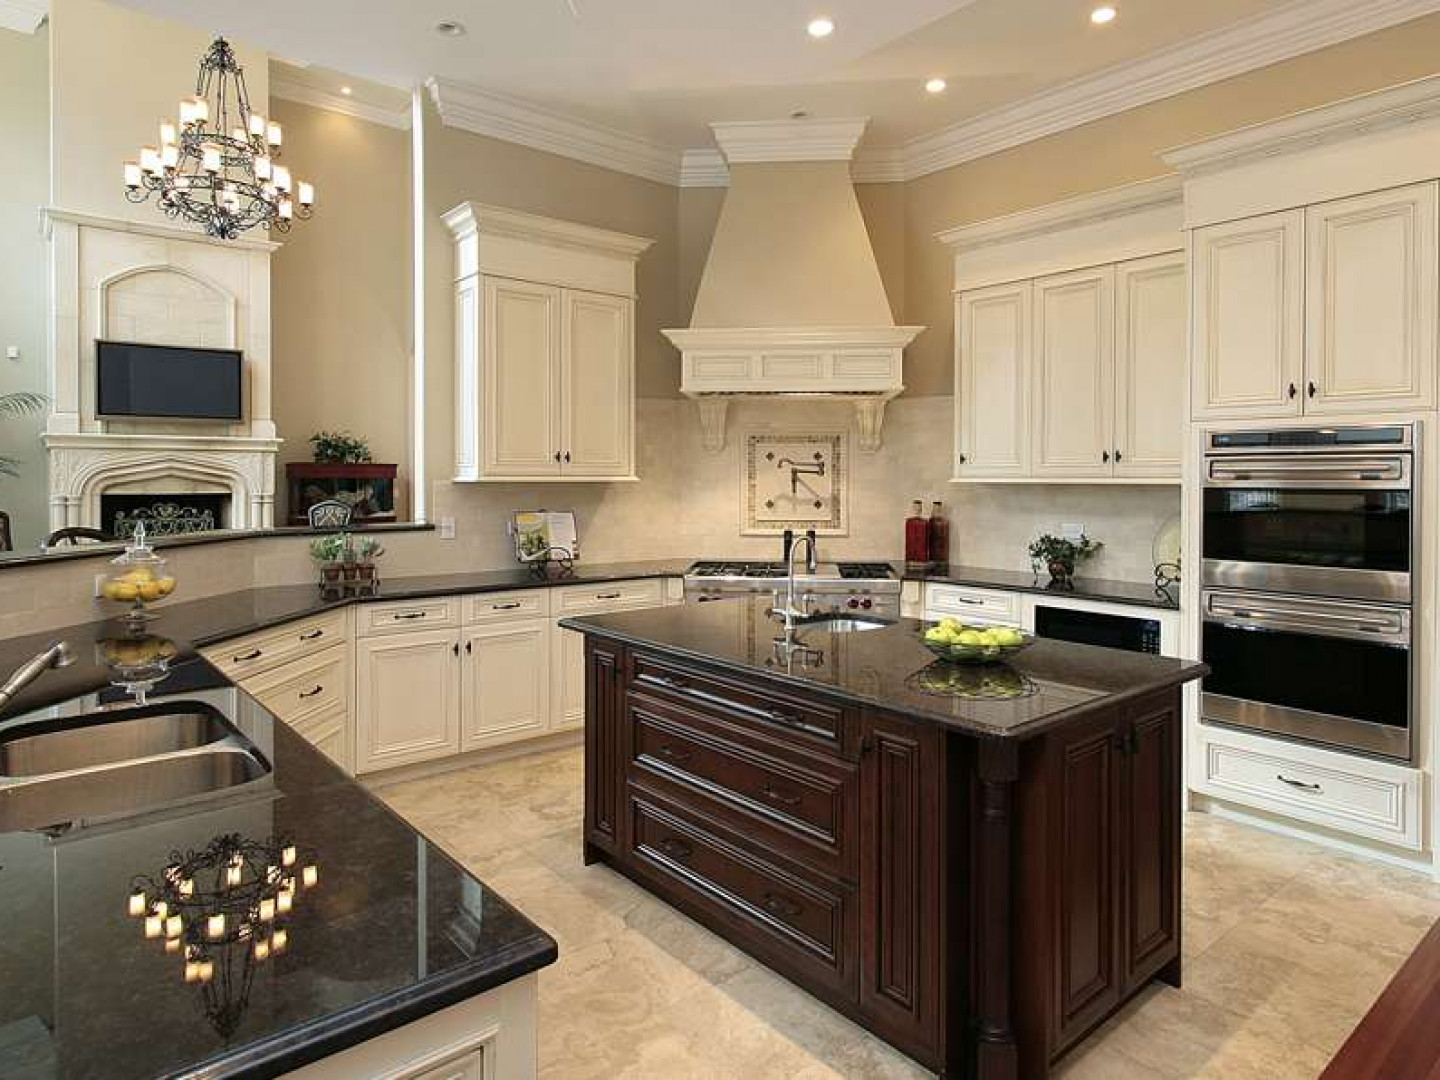 kitchen remodels Salem, UT